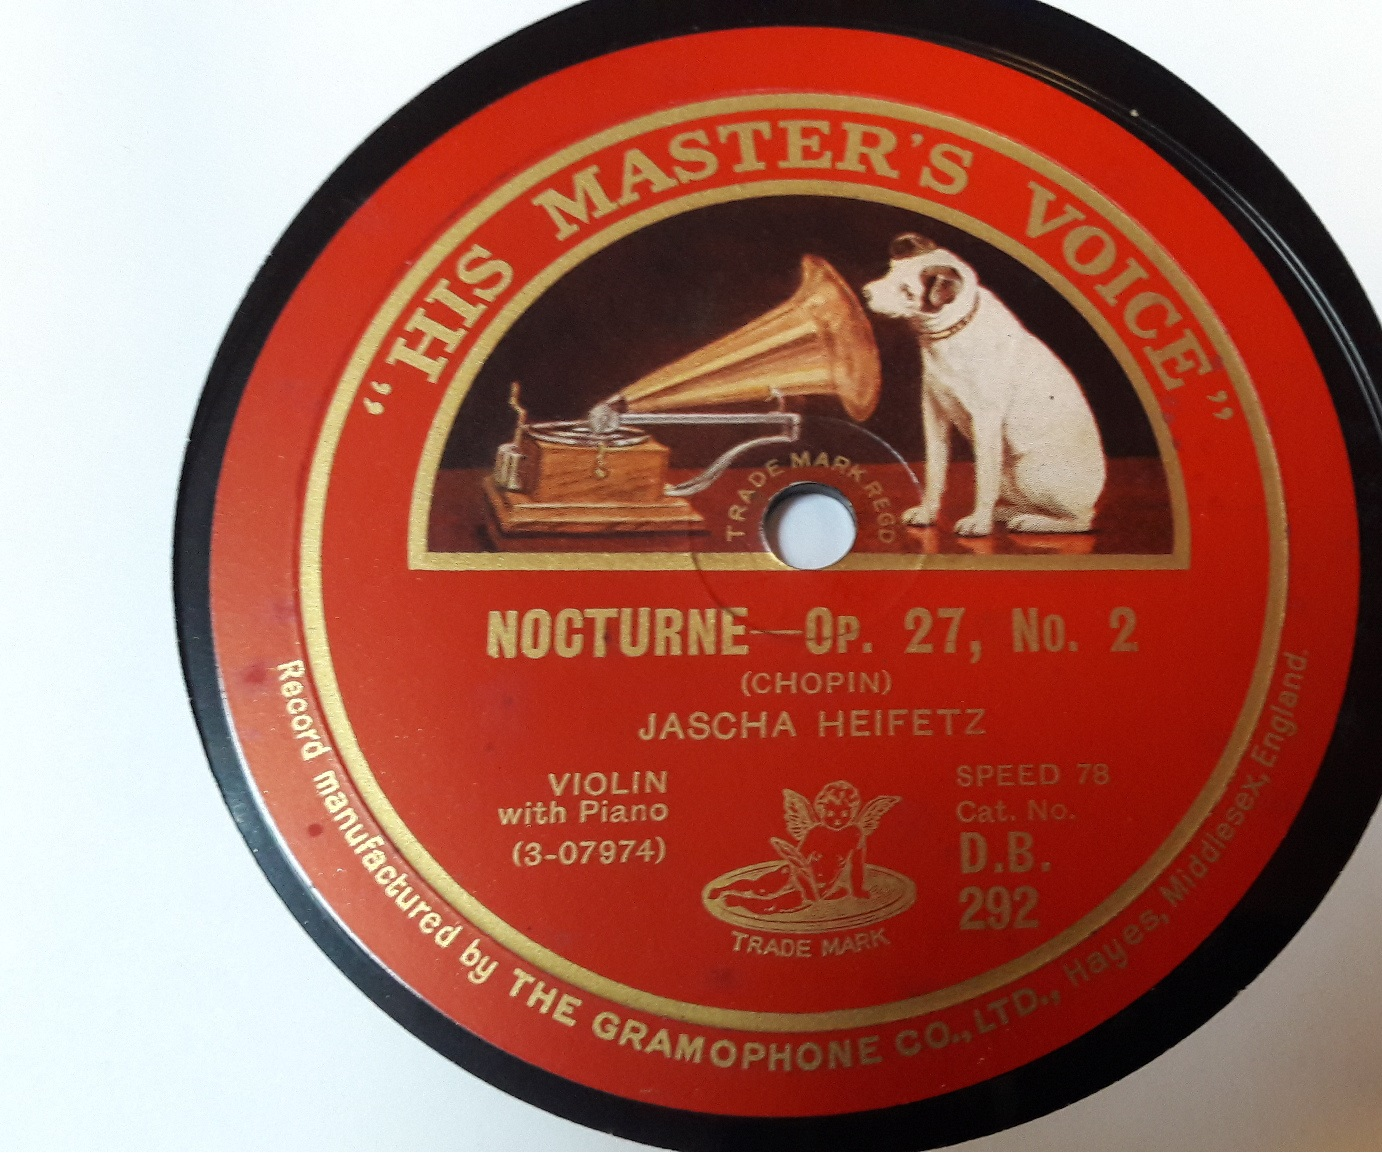 HMV DB292 - Jascha Heifetz Violin - Rondo in C Major / Nocturne